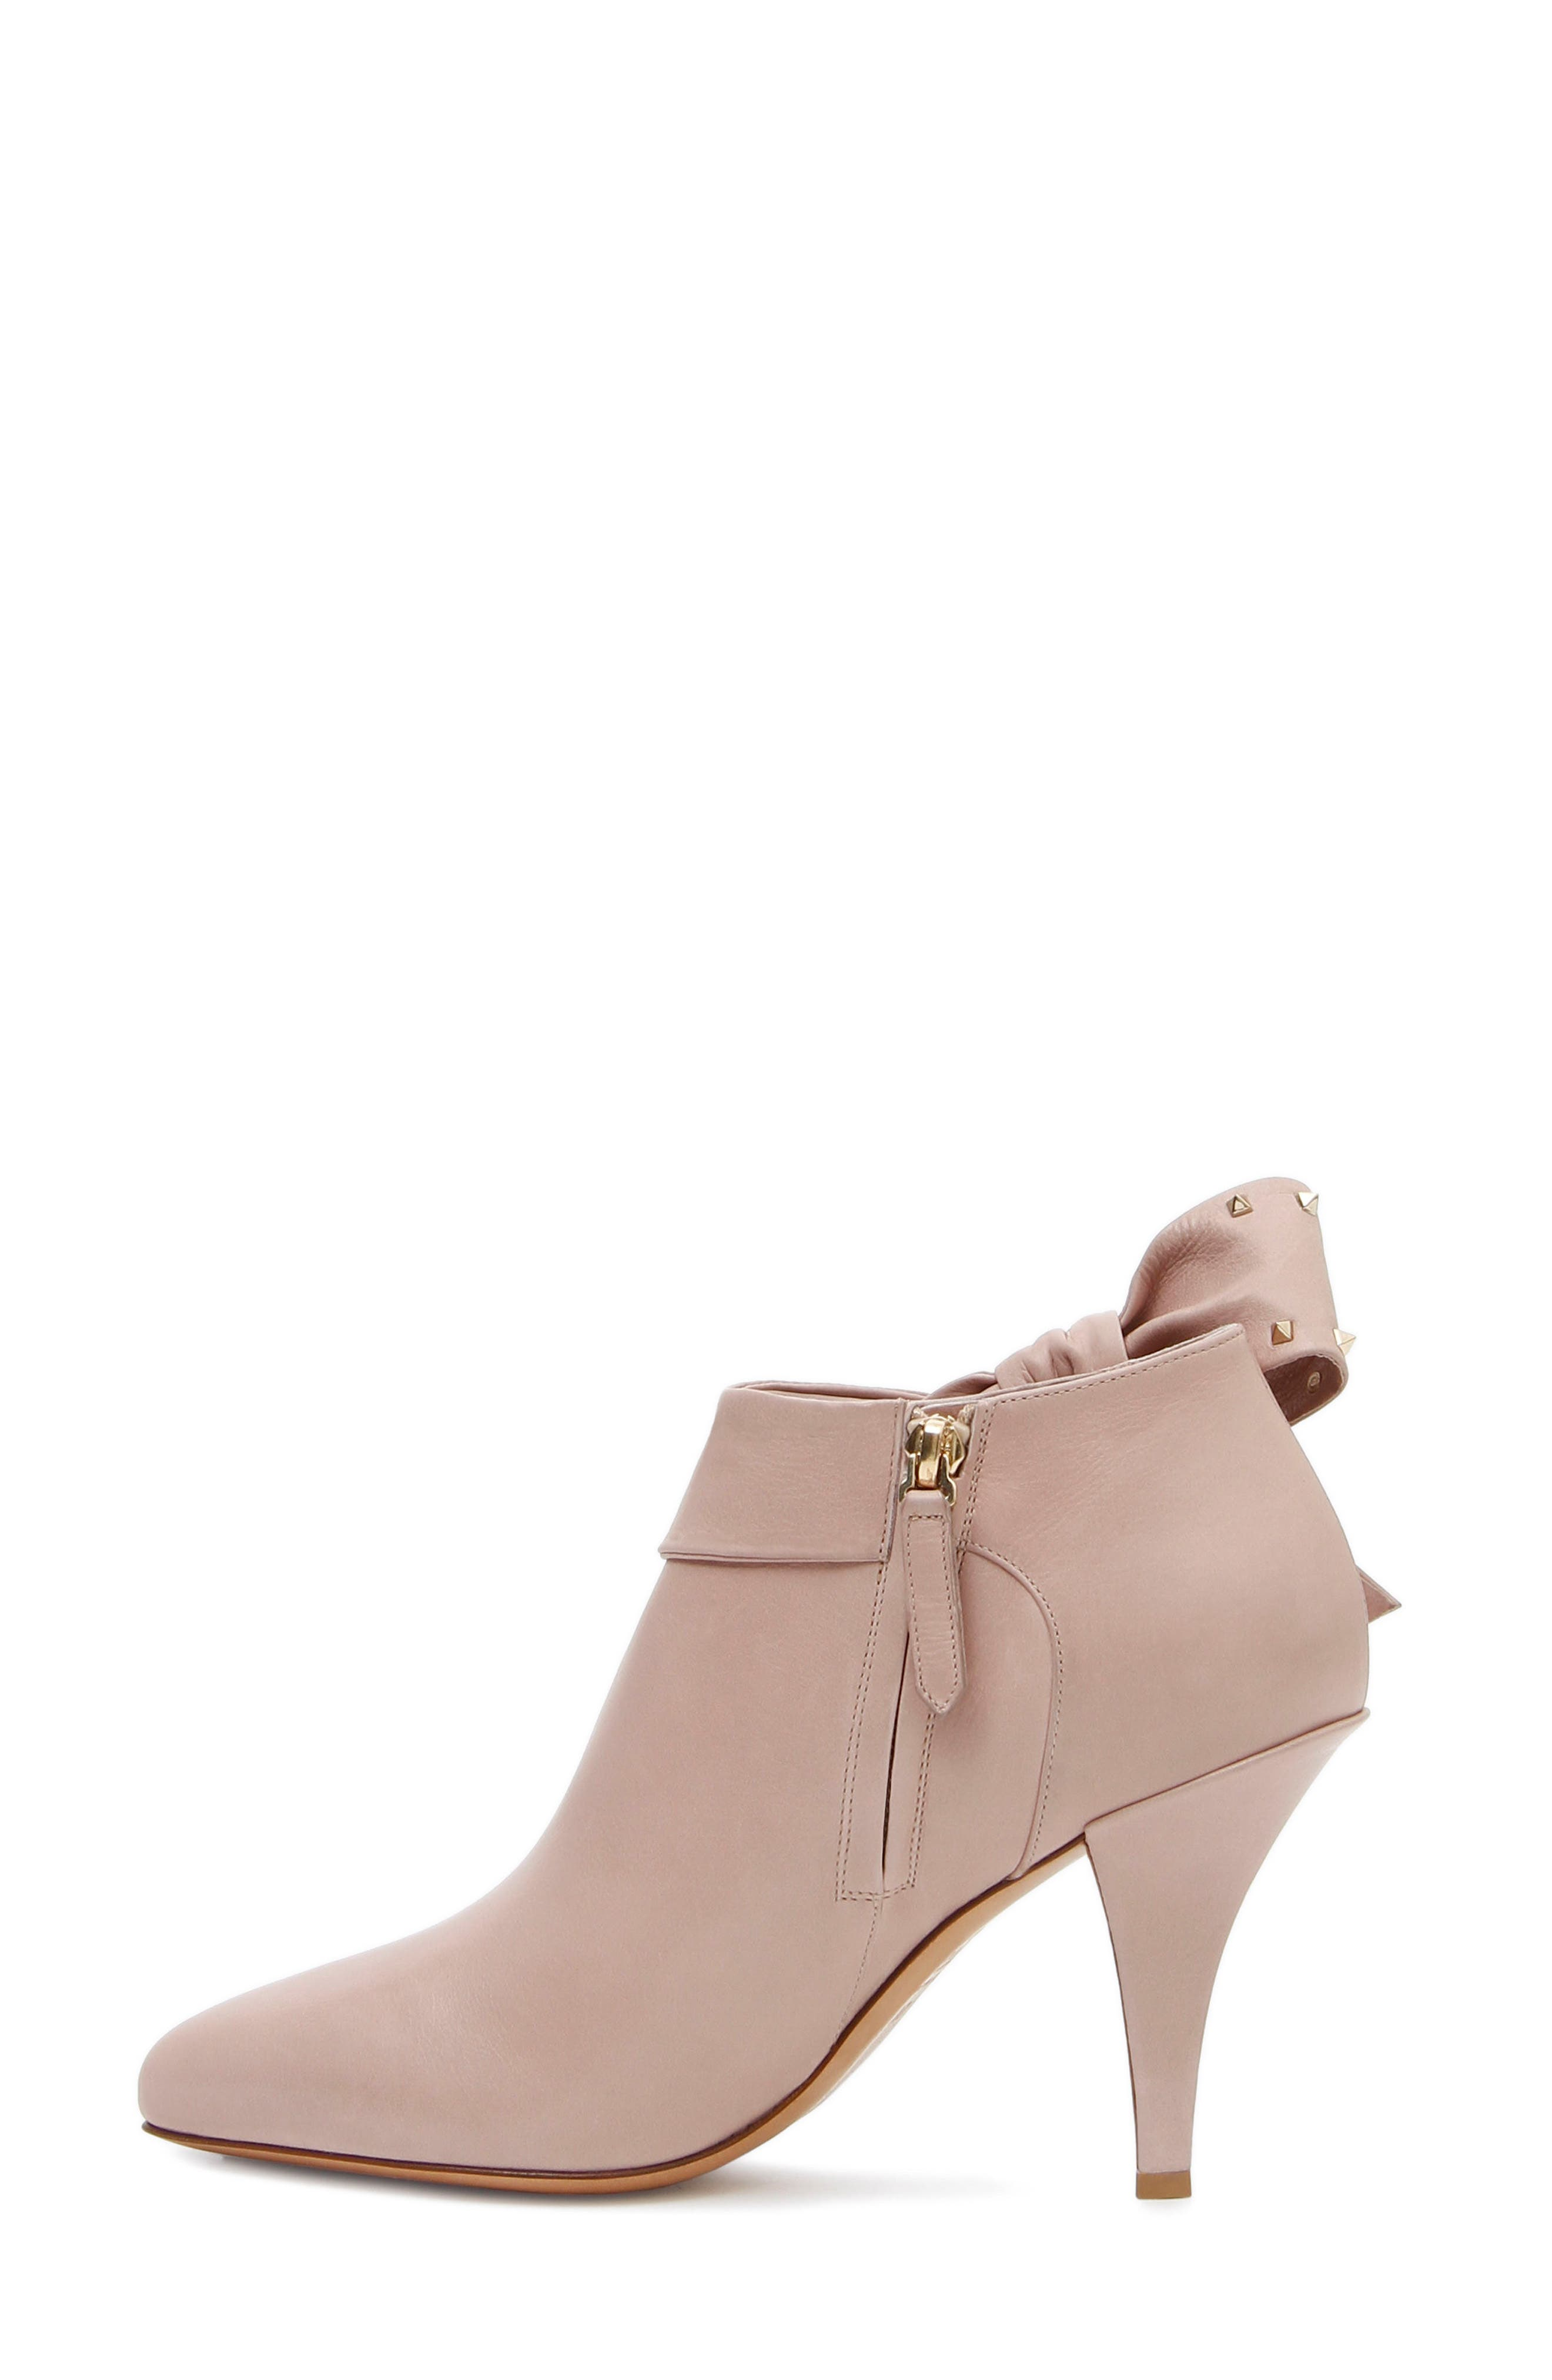 Studded Bow Ankle Bootie,                             Alternate thumbnail 2, color,                             Poudre